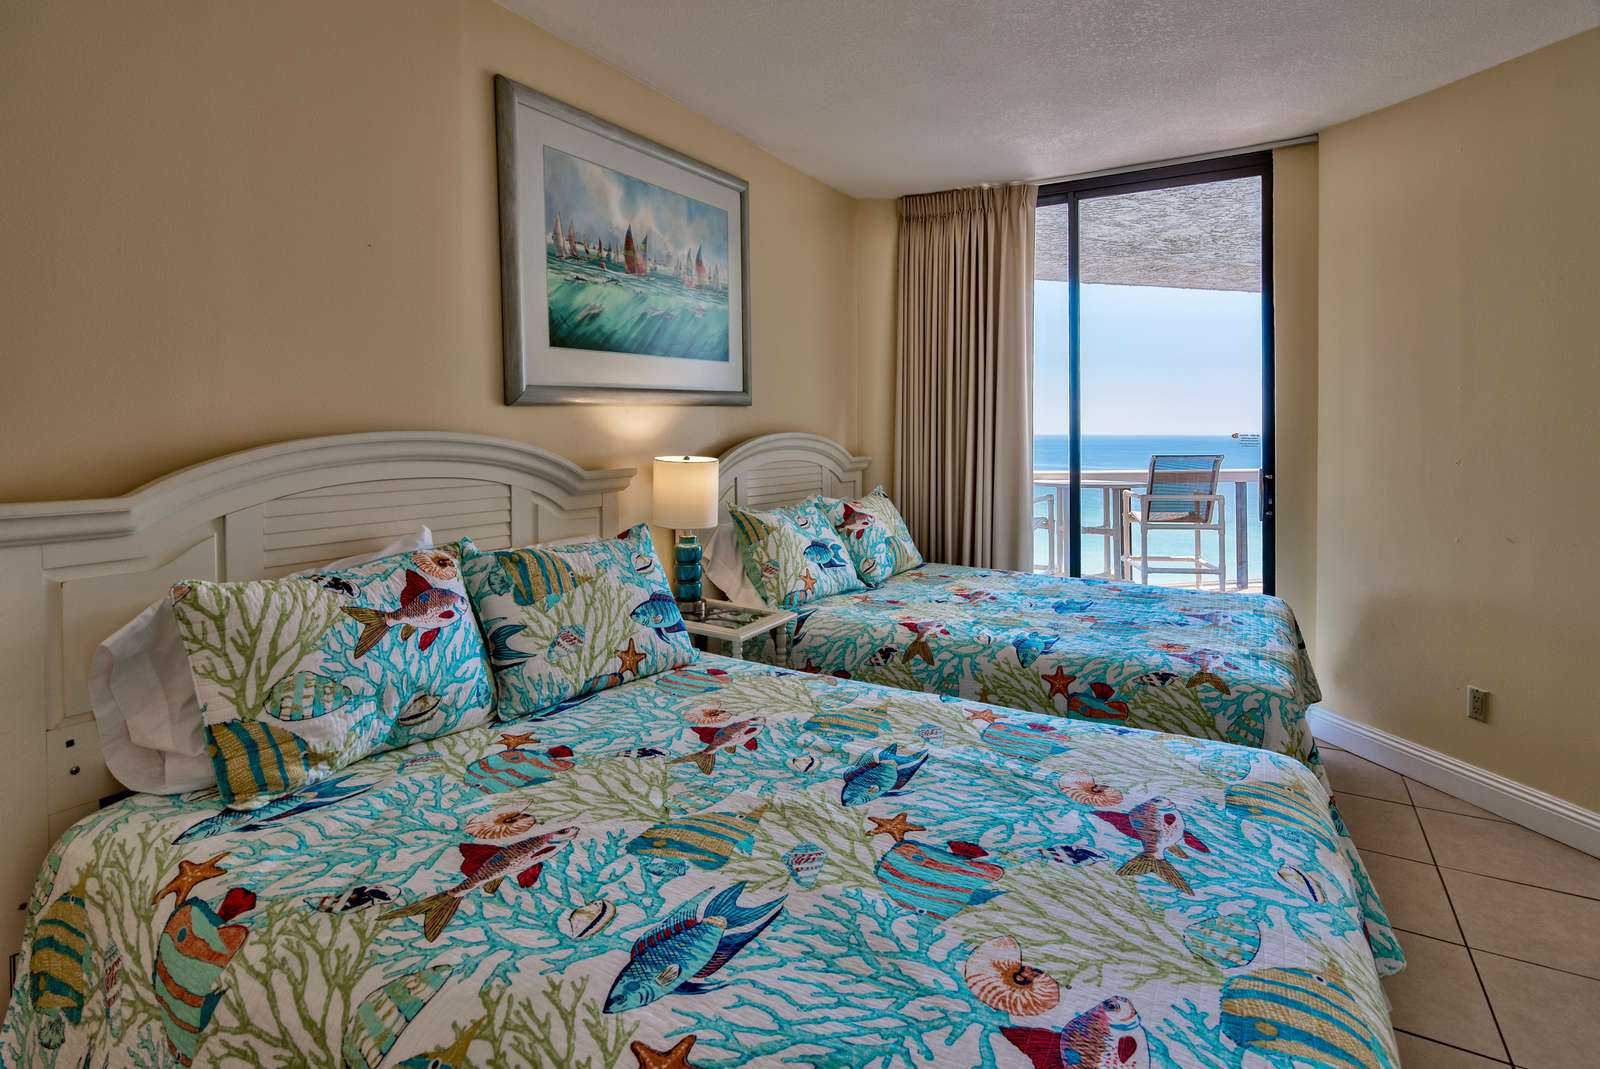 2nd Bedroom - Queen Beds - Views of the Gulf